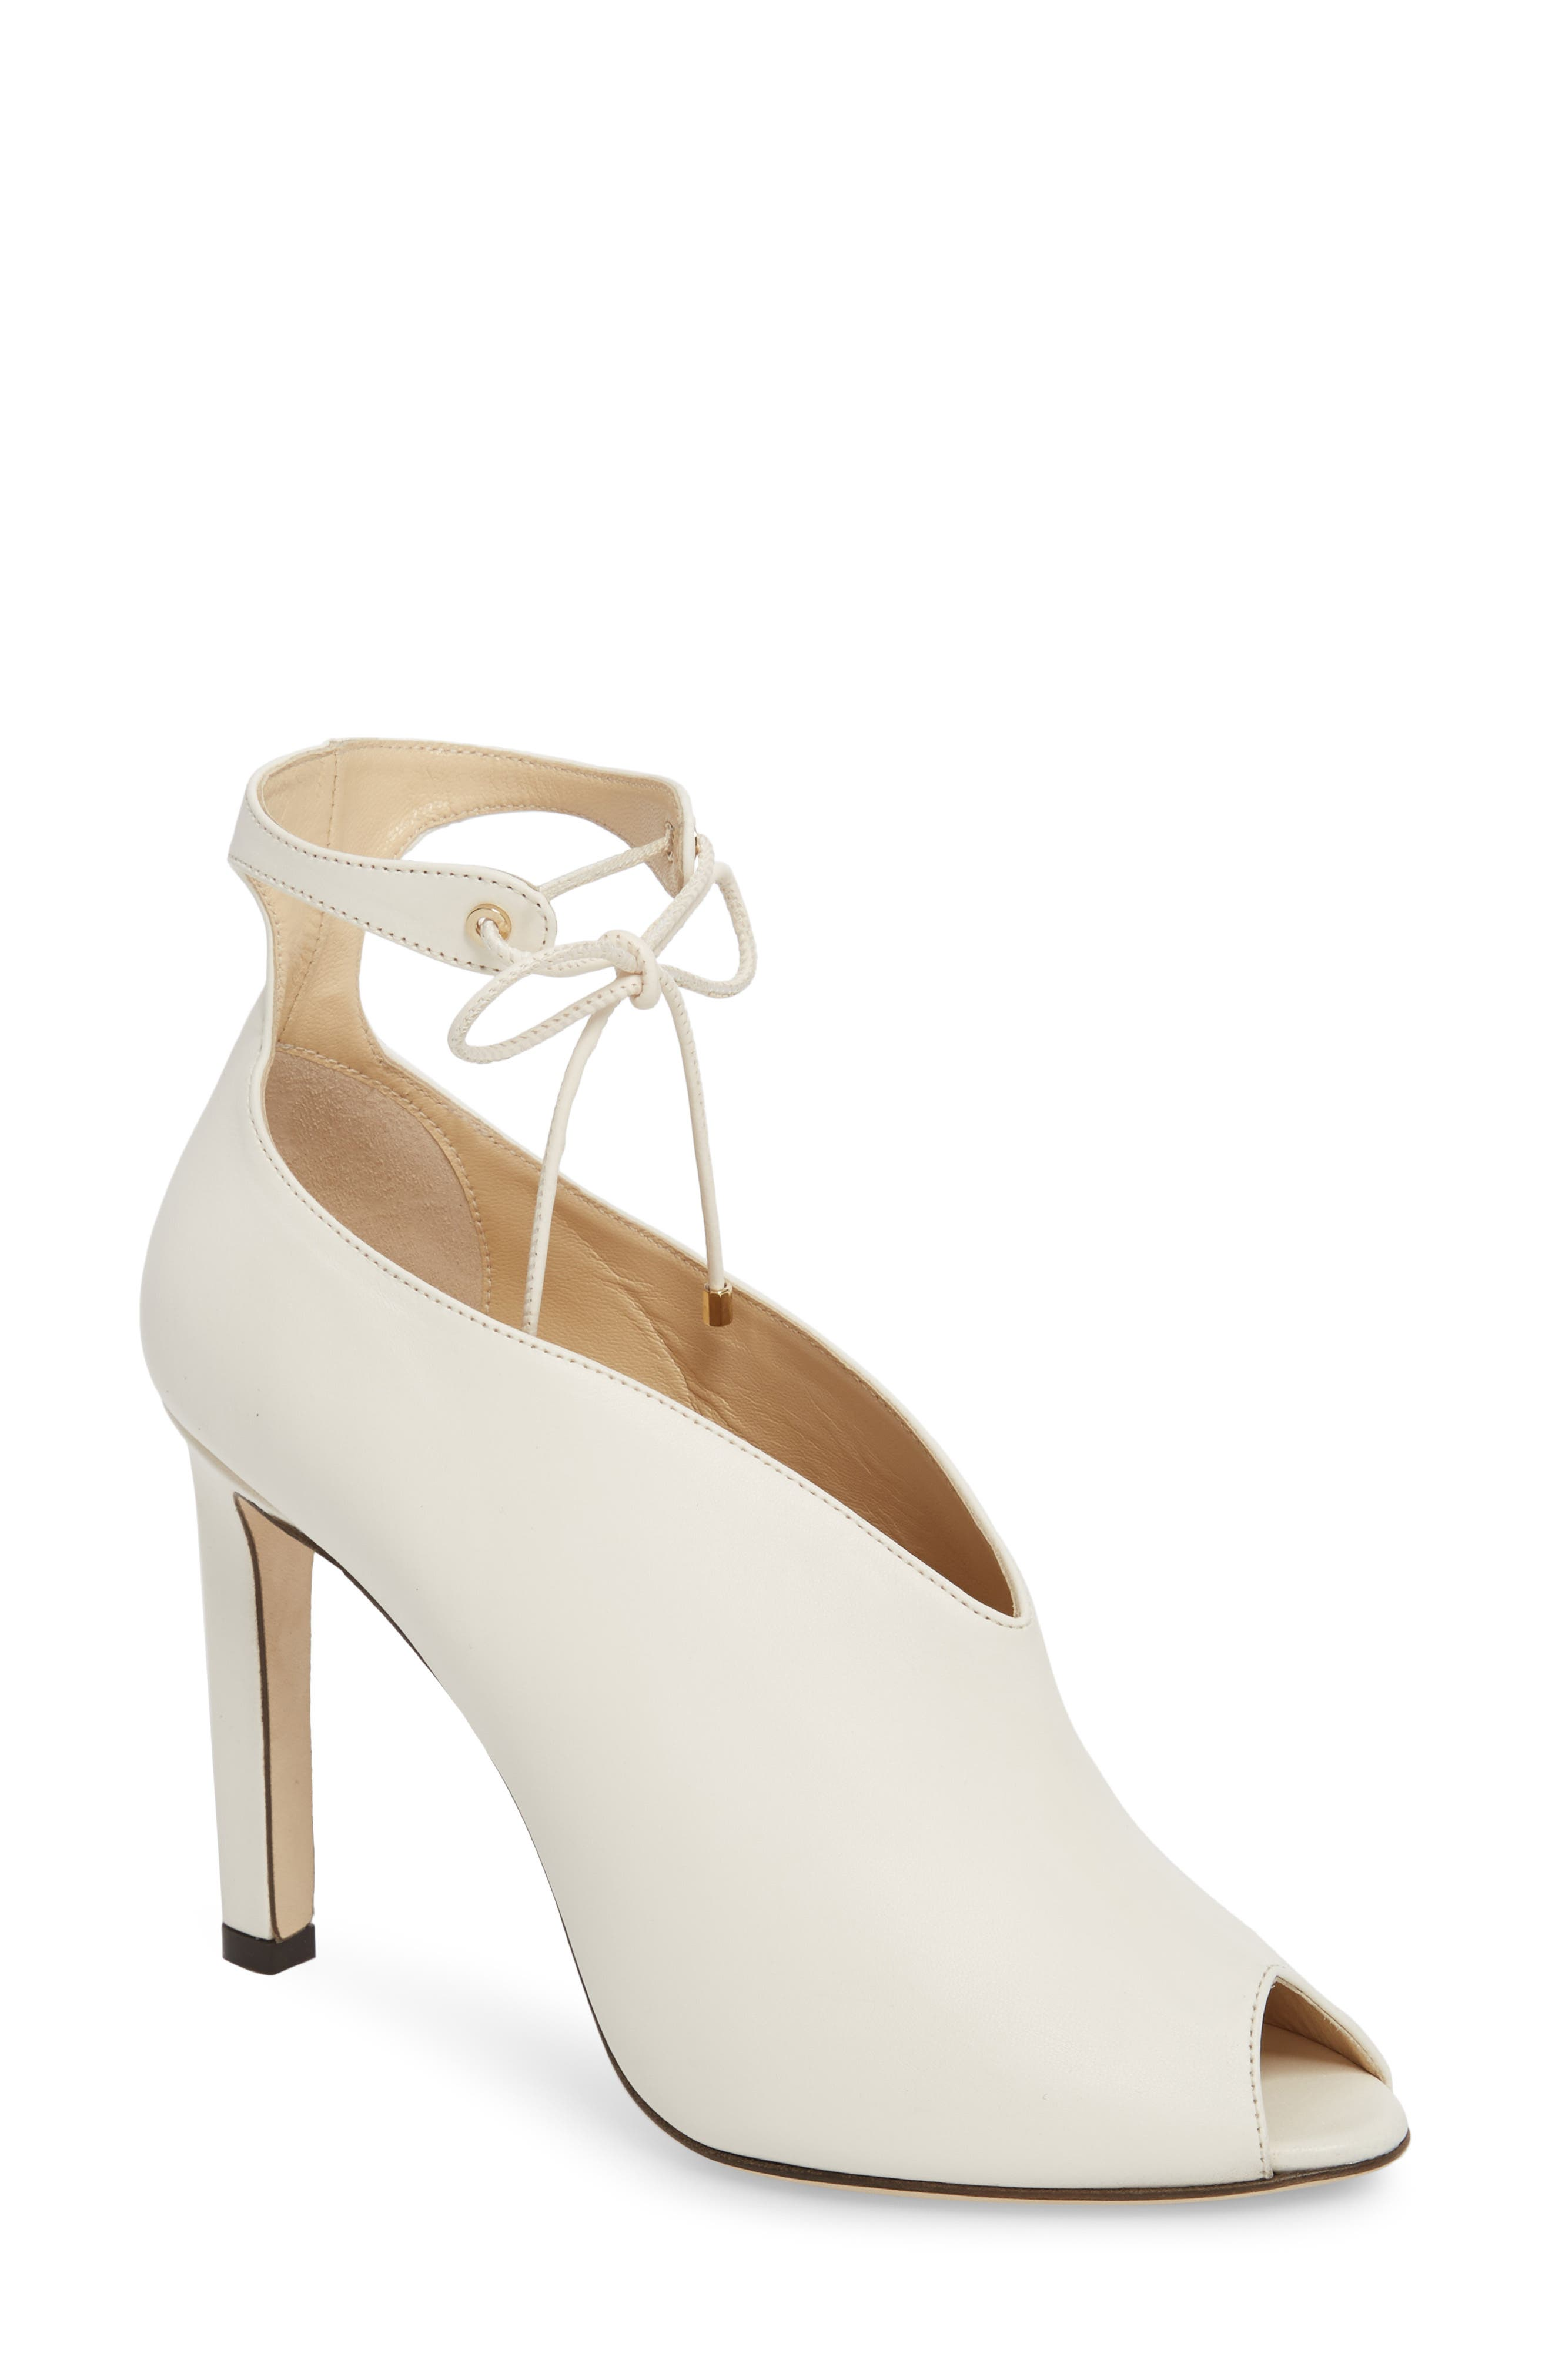 Sayra Ankle Tie Bootie,                         Main,                         color, Chalk